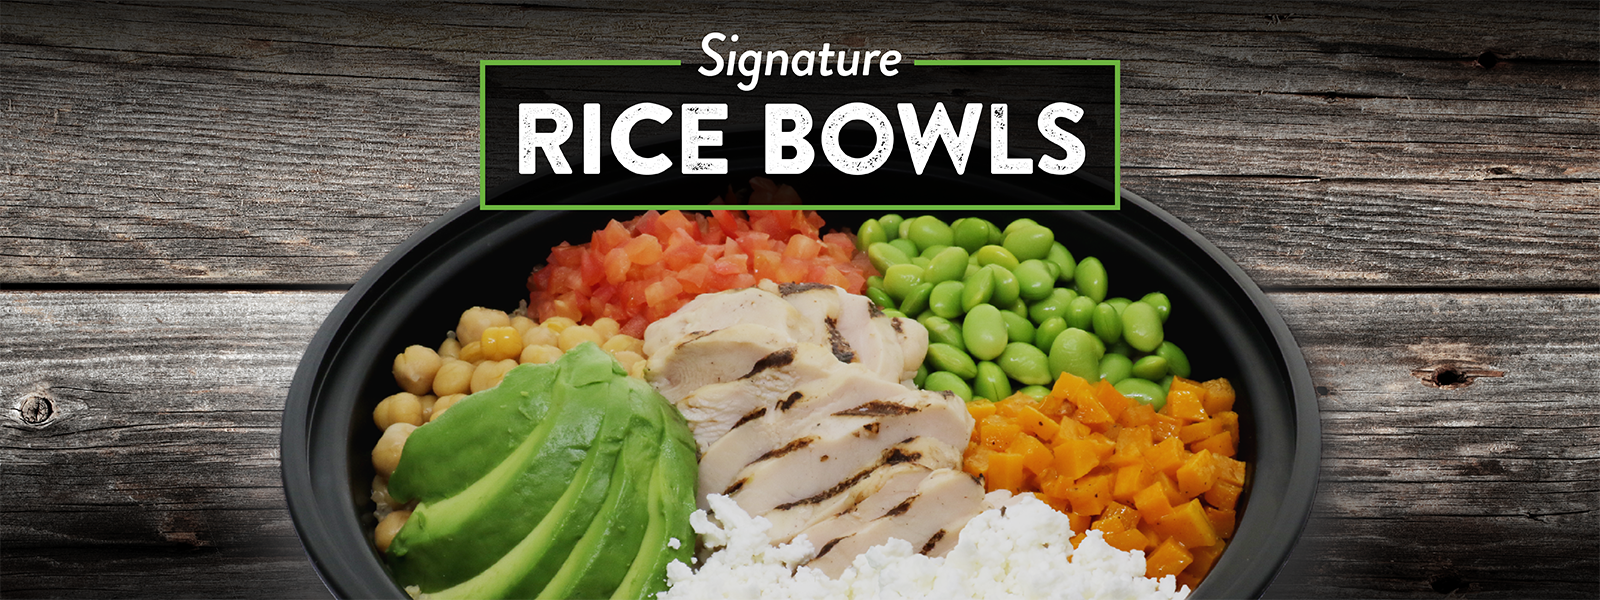 New Rice Bowls With Rice, Chicken, Avocado, Chick Peas, Butternut Squash, Edamame And Feta